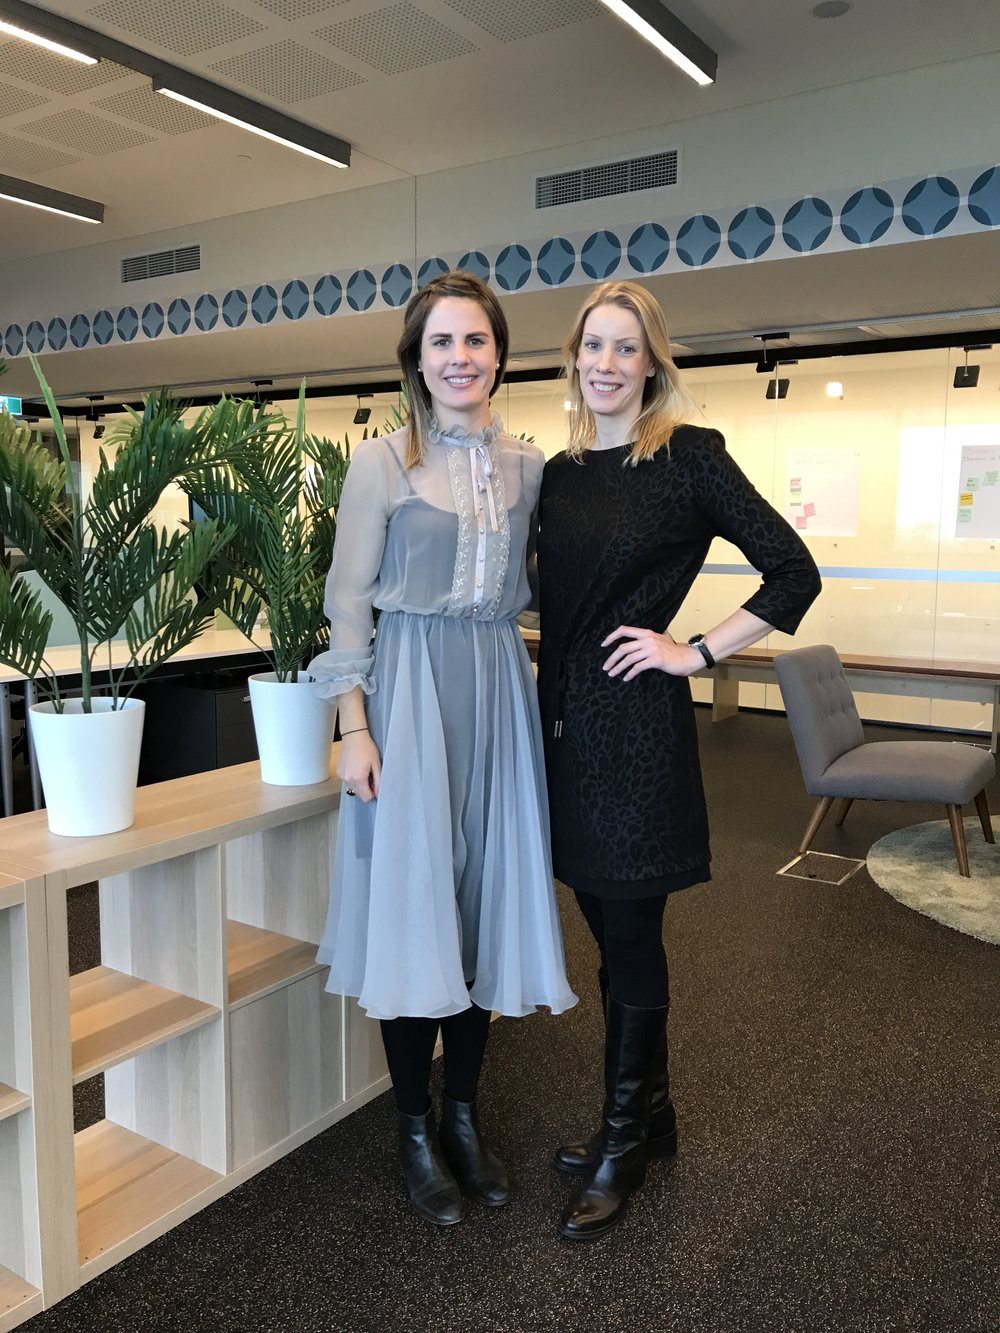 Harriet (left) with Alma & Bramble Co-founder Mathilde Bach Stougaard at 'Coterie9' the coworking space where they are working for the next three months as part of the Collider Accelerator.